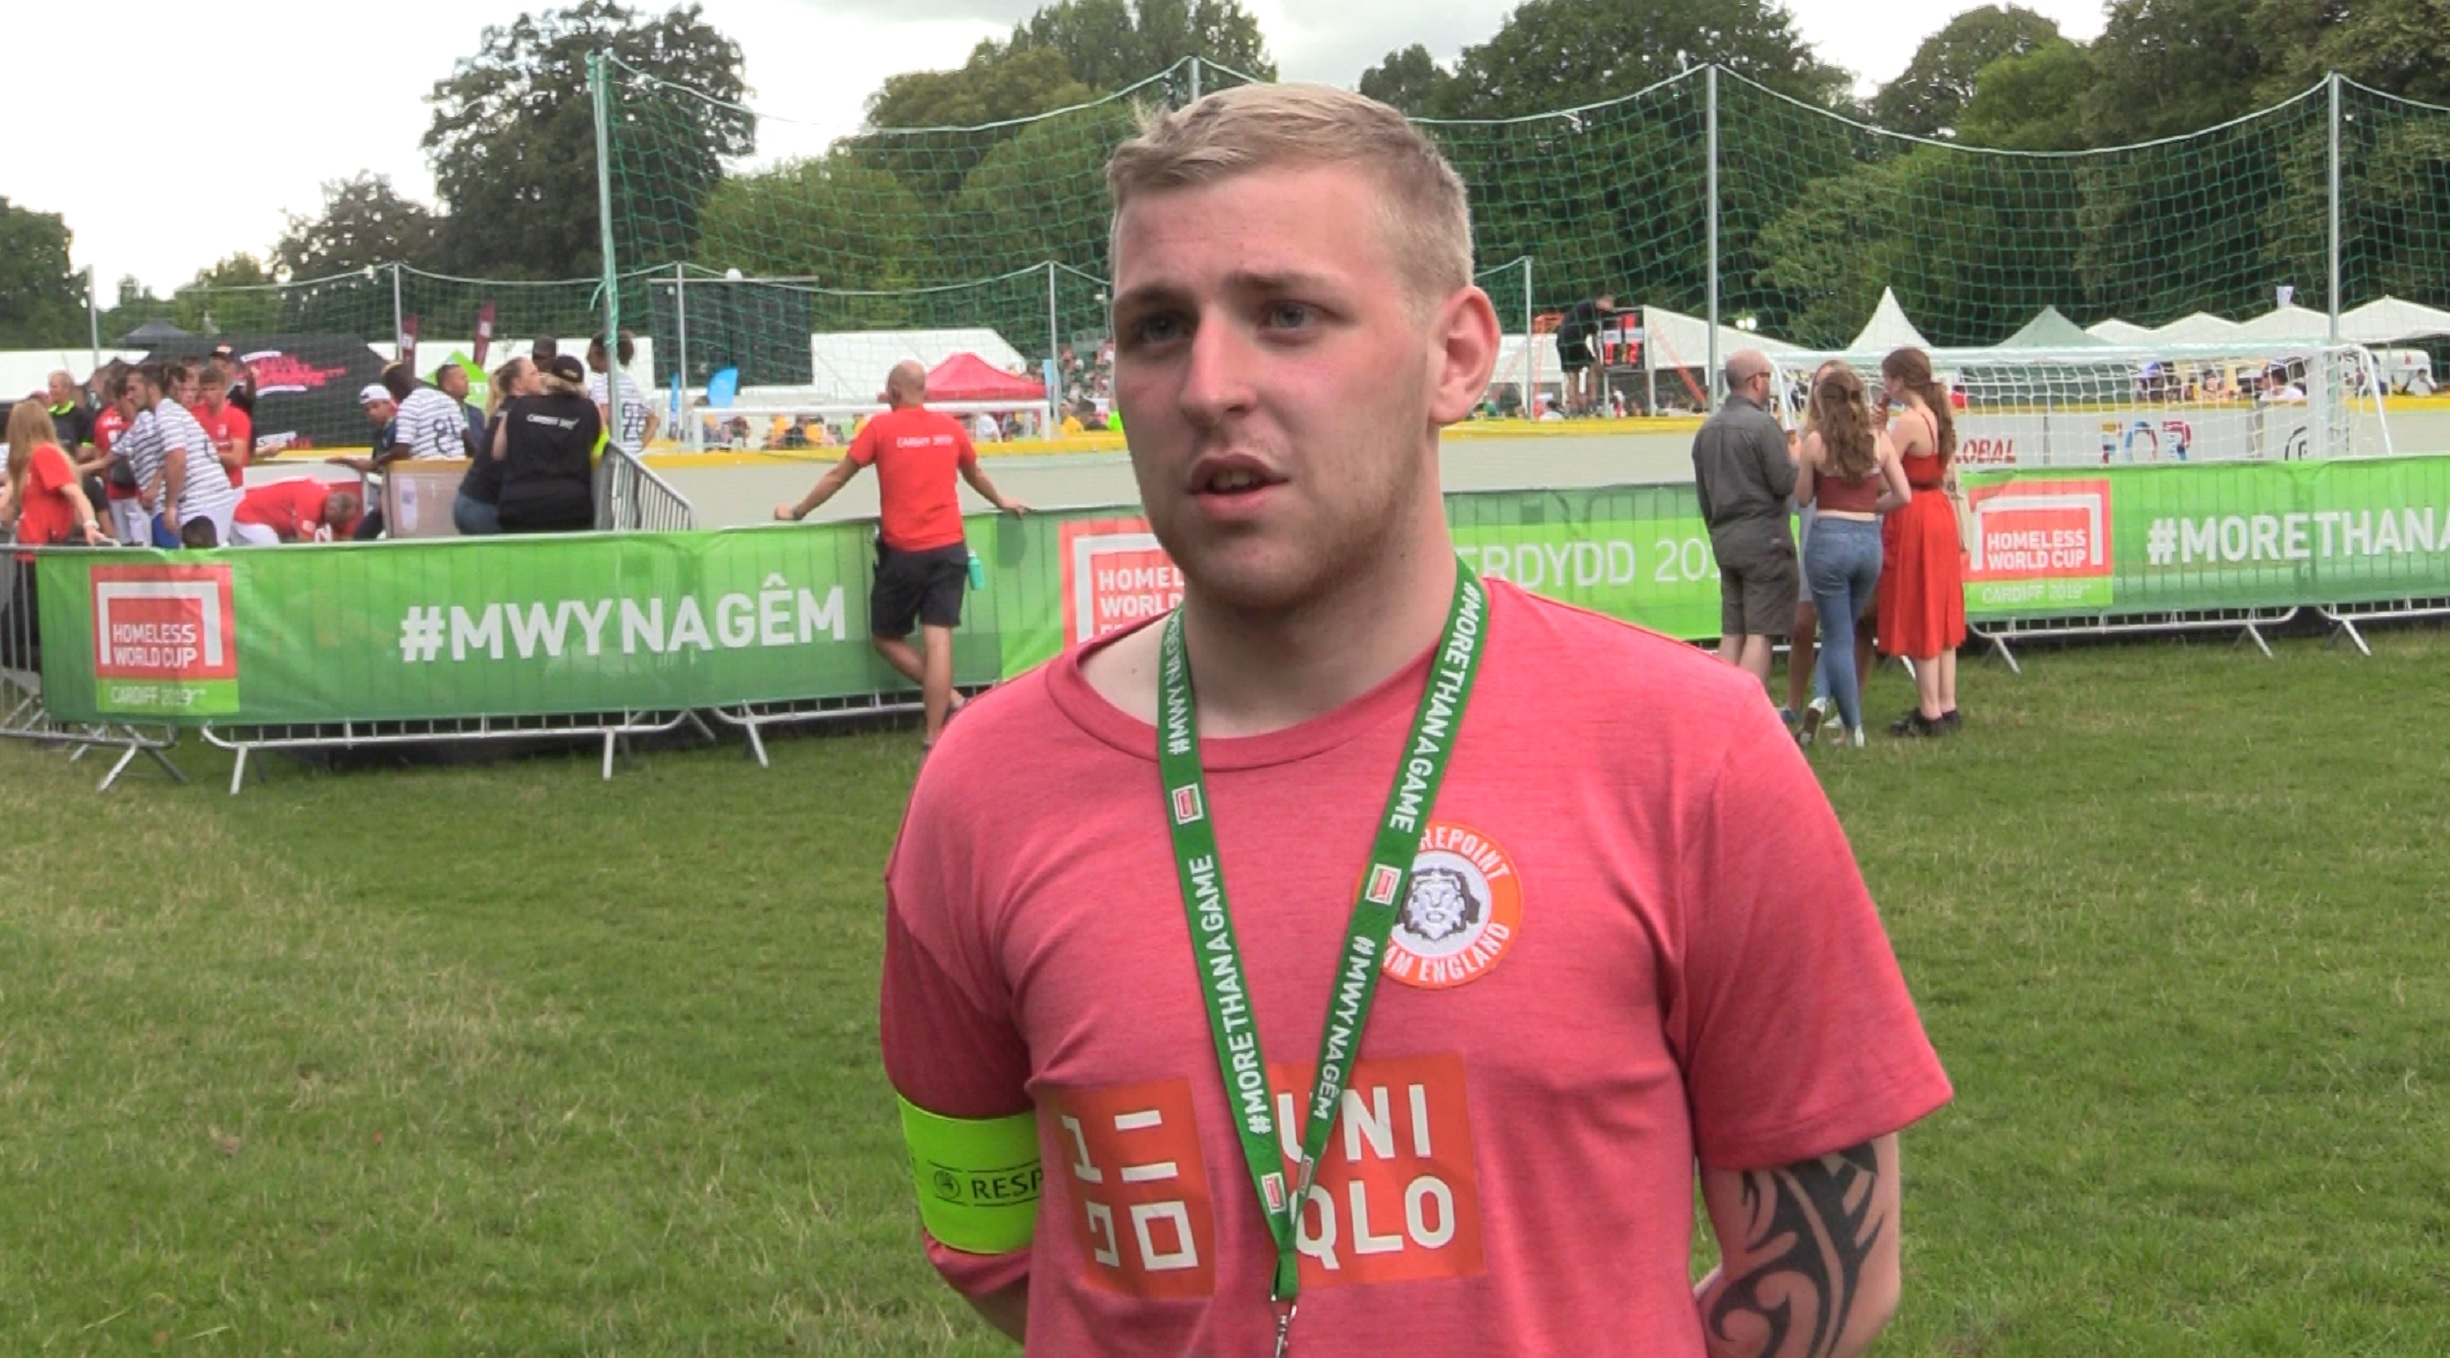 England men's goalkeeper Thomas at the 2019 Homeless World Cup in Cardiff